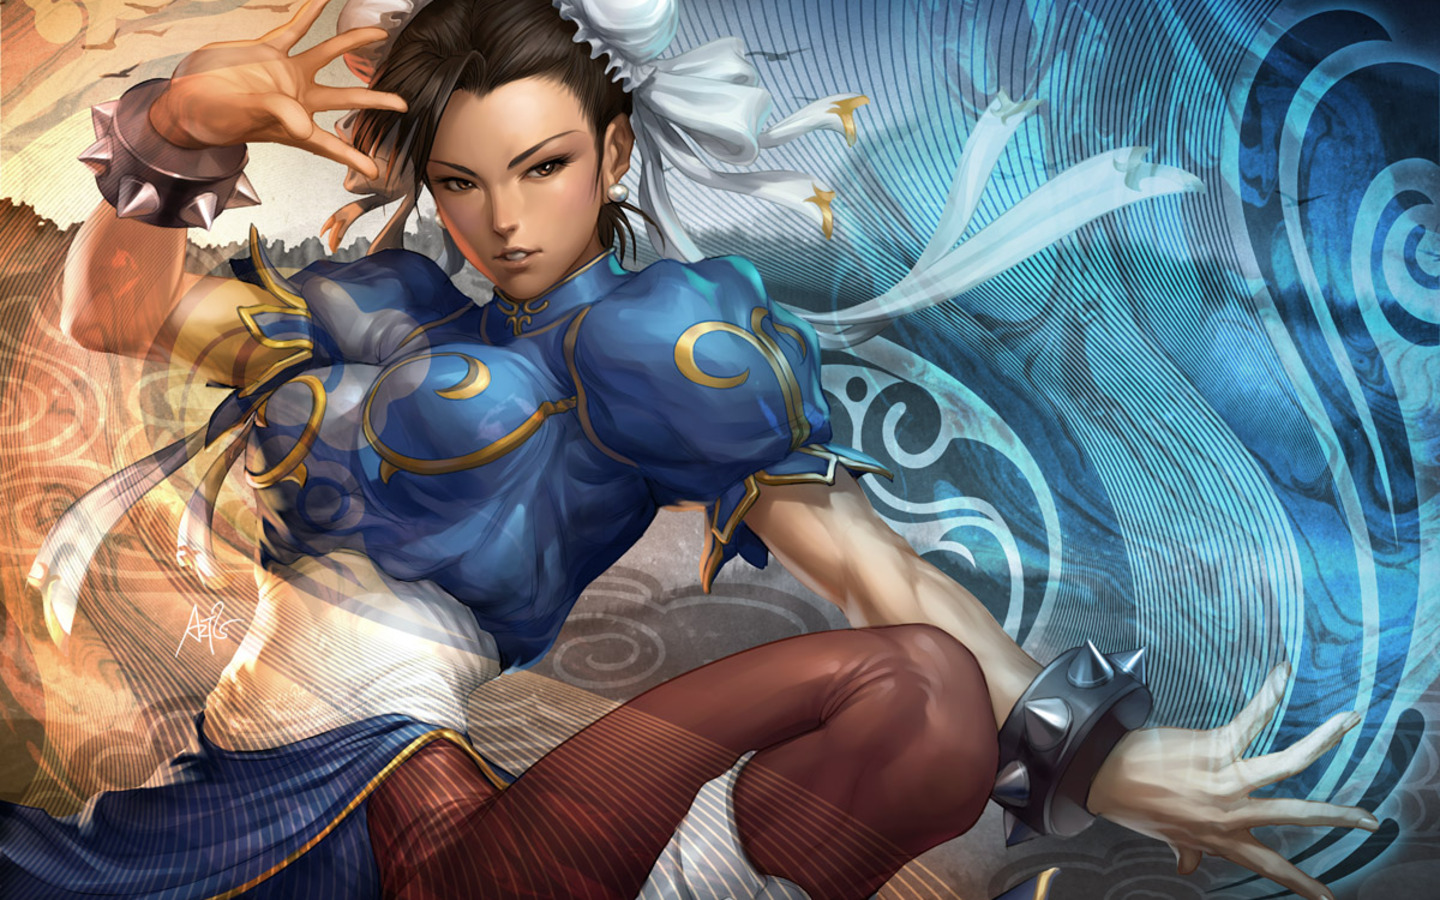 Chun Li de Street Fighter - 1440x900